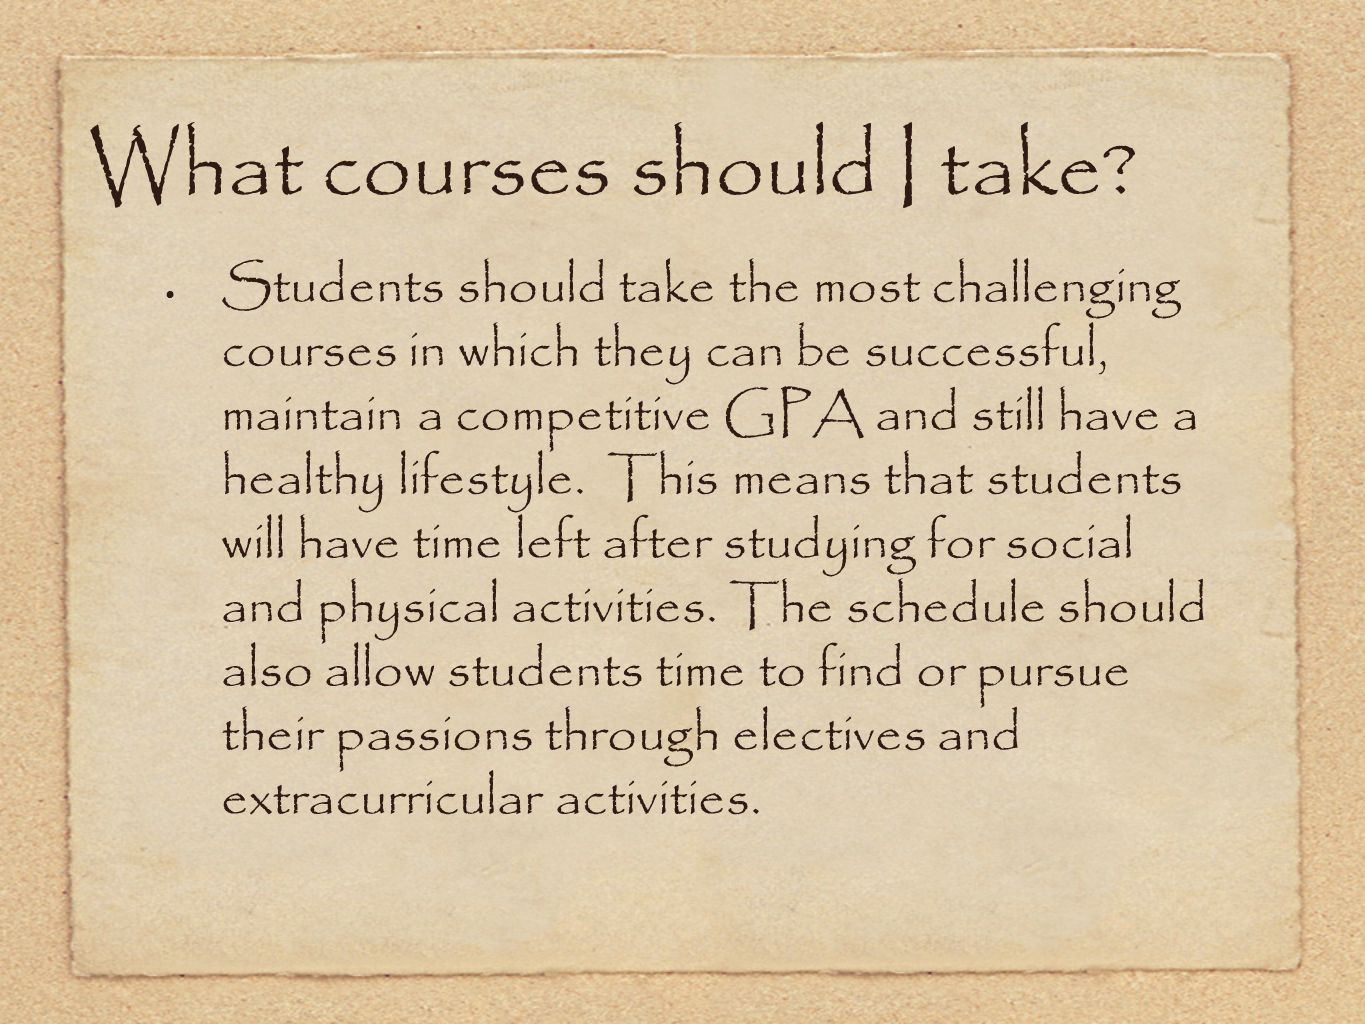 What courses should I take? Students should take the most challenging courses in which they can be successful, maintain a competitive GPA and still ha